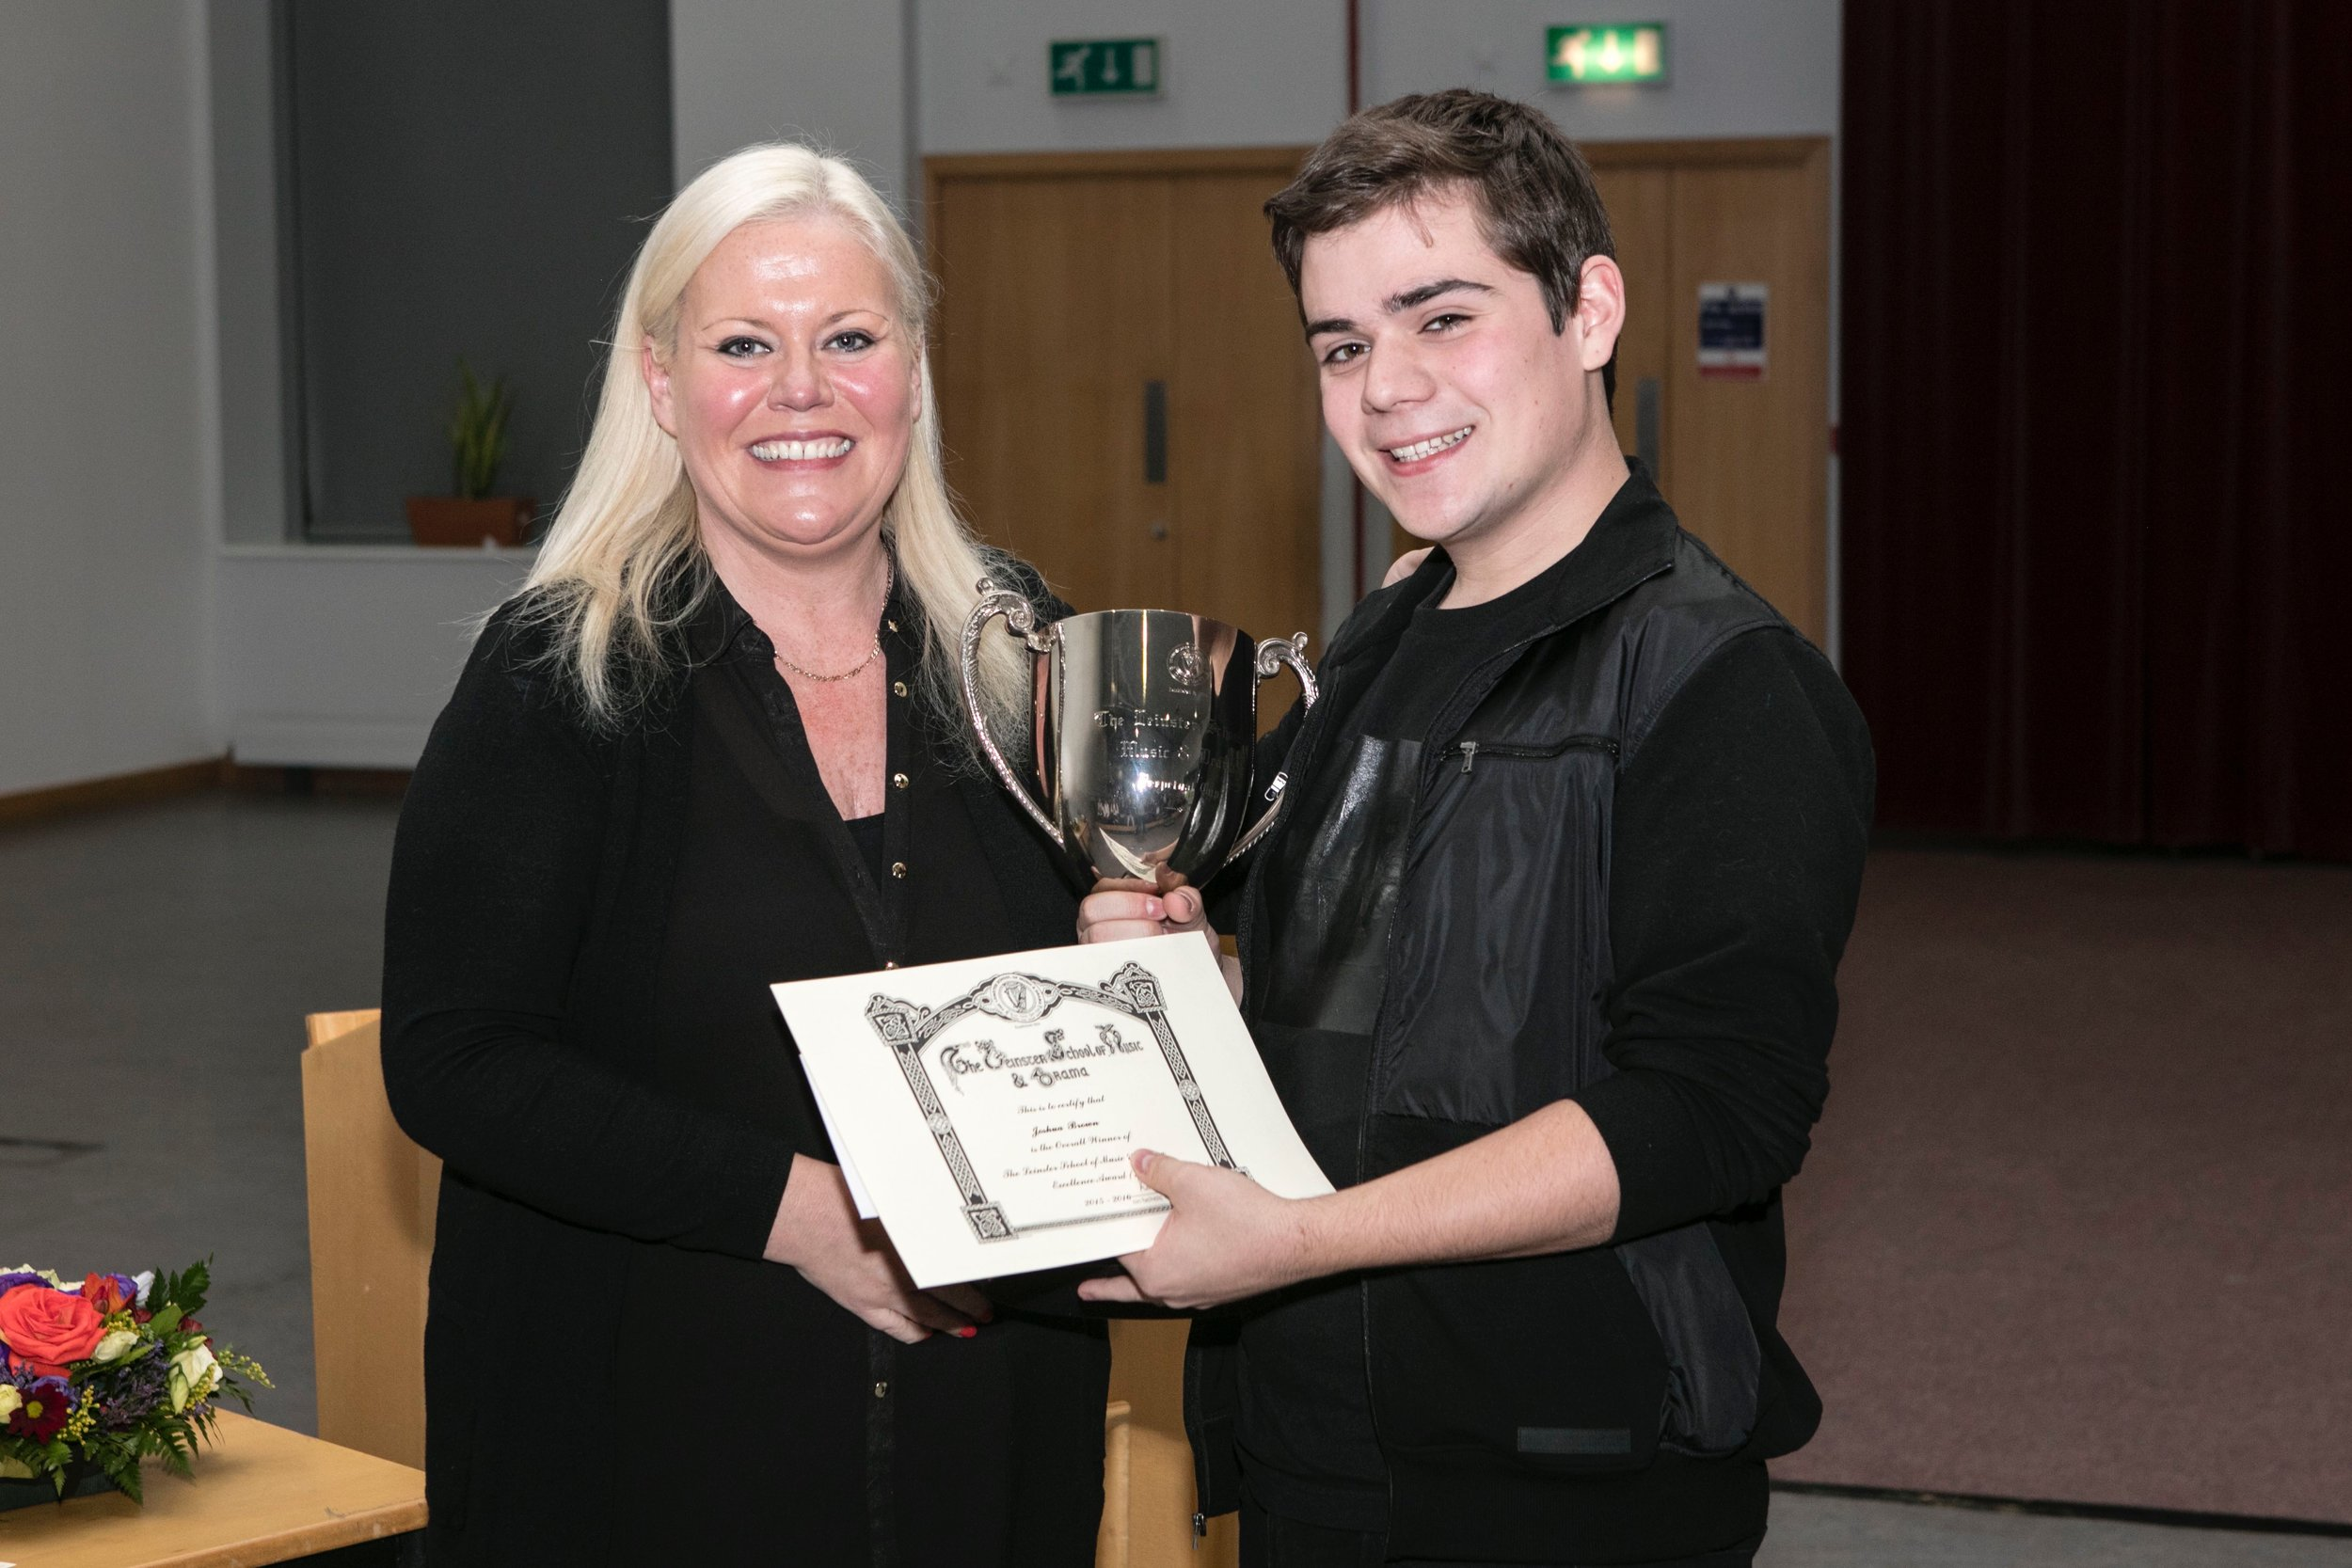 Joshua receiving the Leinster School of Music & Drama Excellence Award 2016